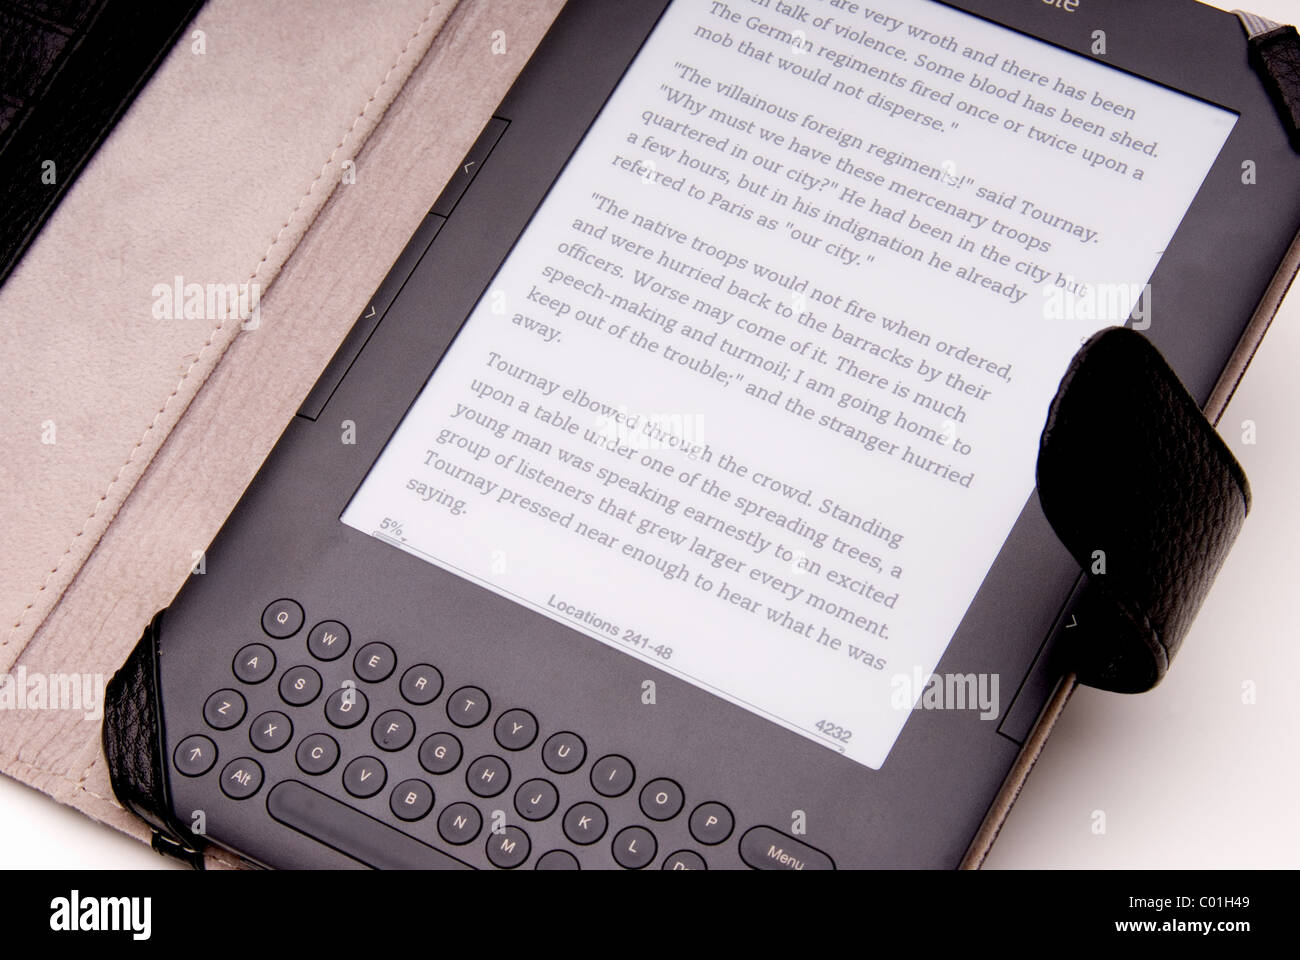 Close up of a kindle ebook reader. - Stock Image